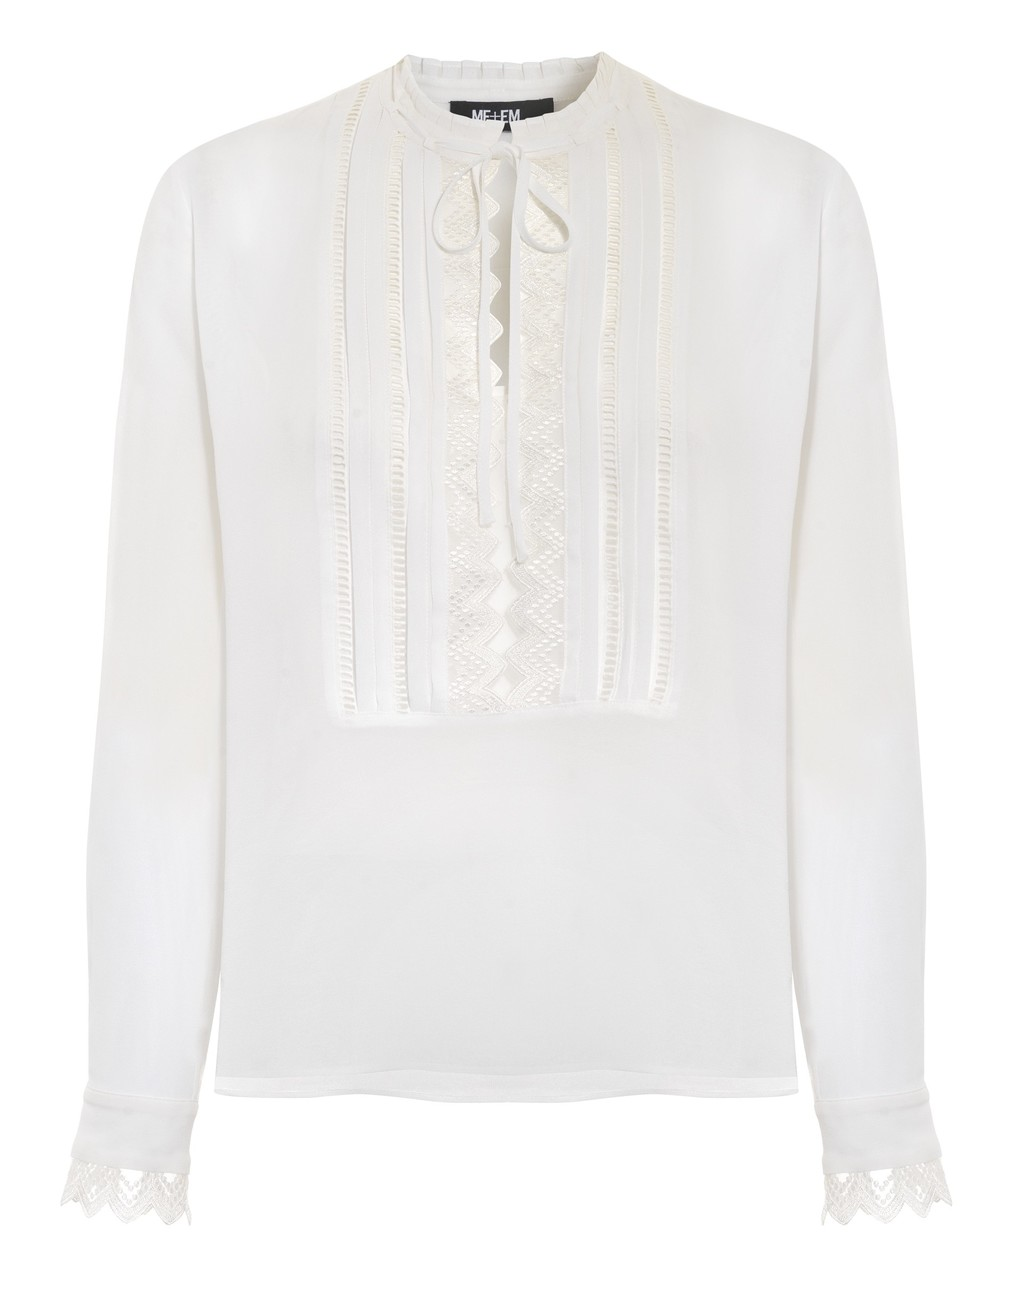 Lace Trim Silk Blouse - pattern: plain; style: blouse; bust detail: subtle bust detail; predominant colour: ivory/cream; occasions: casual, creative work; length: standard; neckline: collarstand; fibres: silk - mix; fit: body skimming; sleeve length: long sleeve; sleeve style: standard; texture group: silky - light; pattern type: fabric; embellishment: lace; season: s/s 2016; wardrobe: highlight